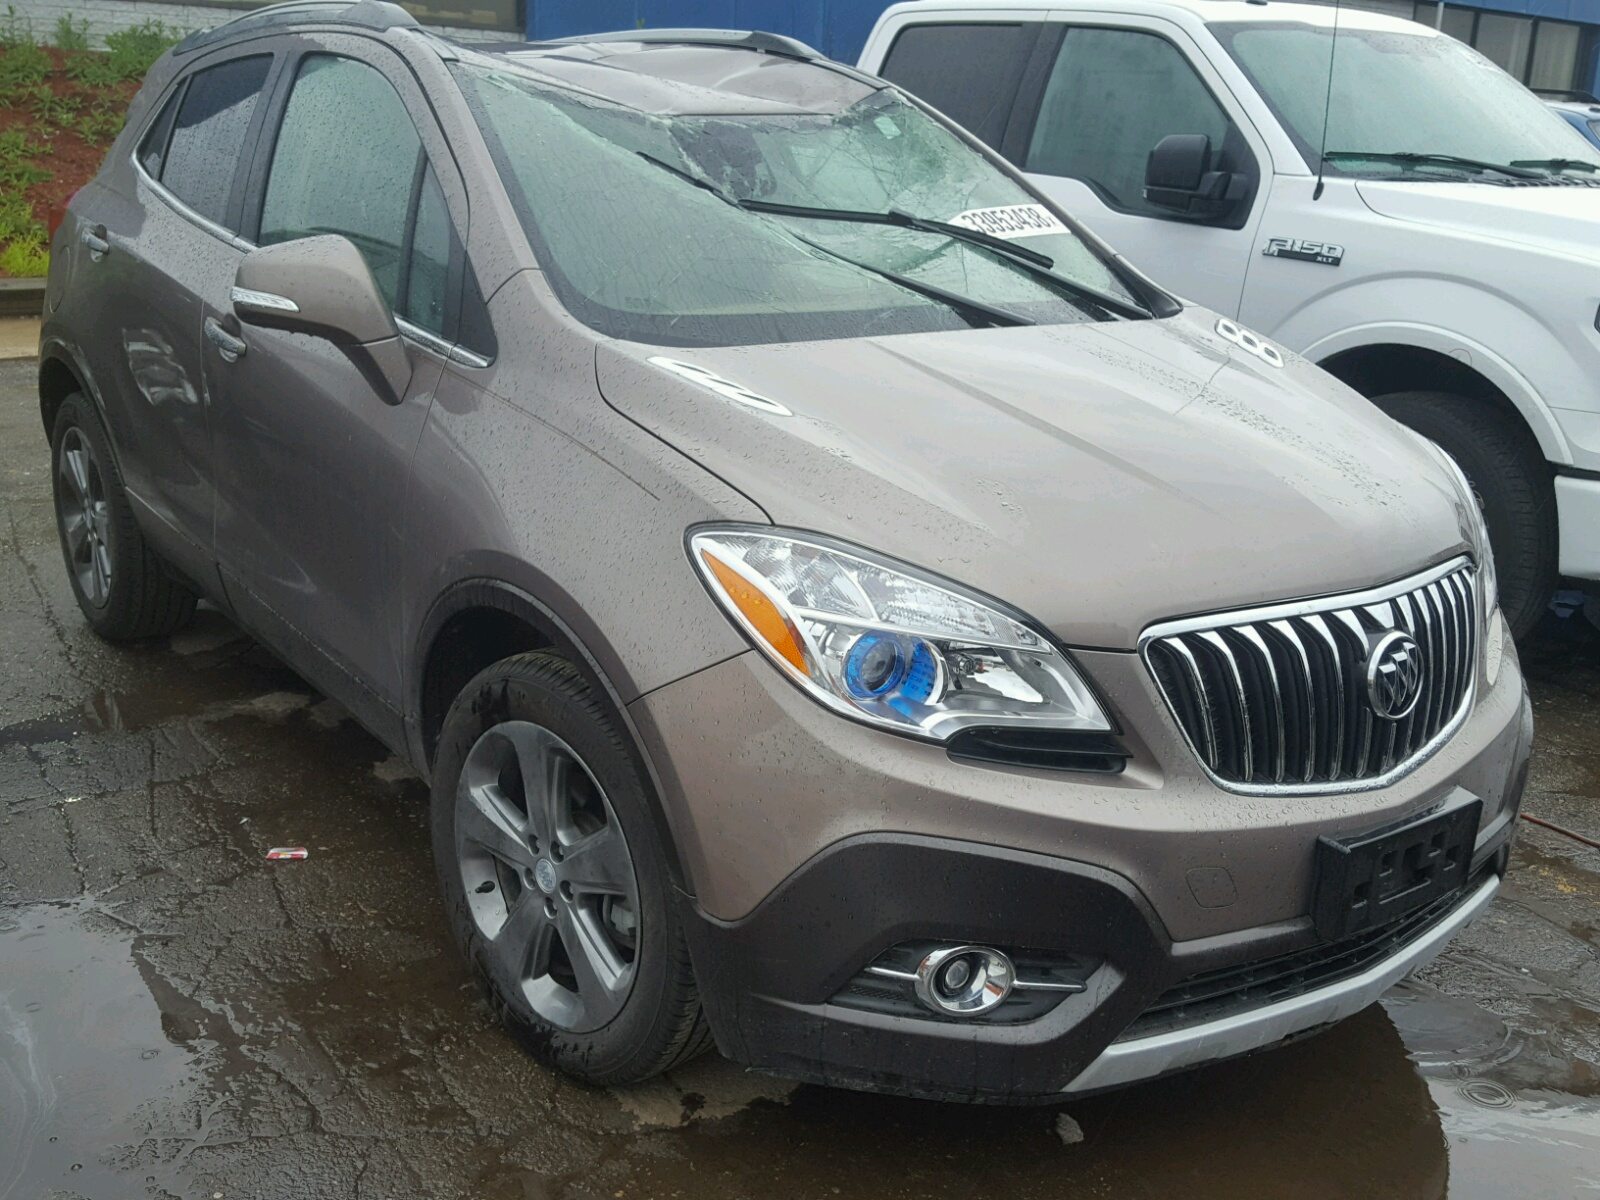 ky of view bill copart maroon carfinder for onlyno salepart in lexington sale right west lot auto titl online on auctions encore en buick